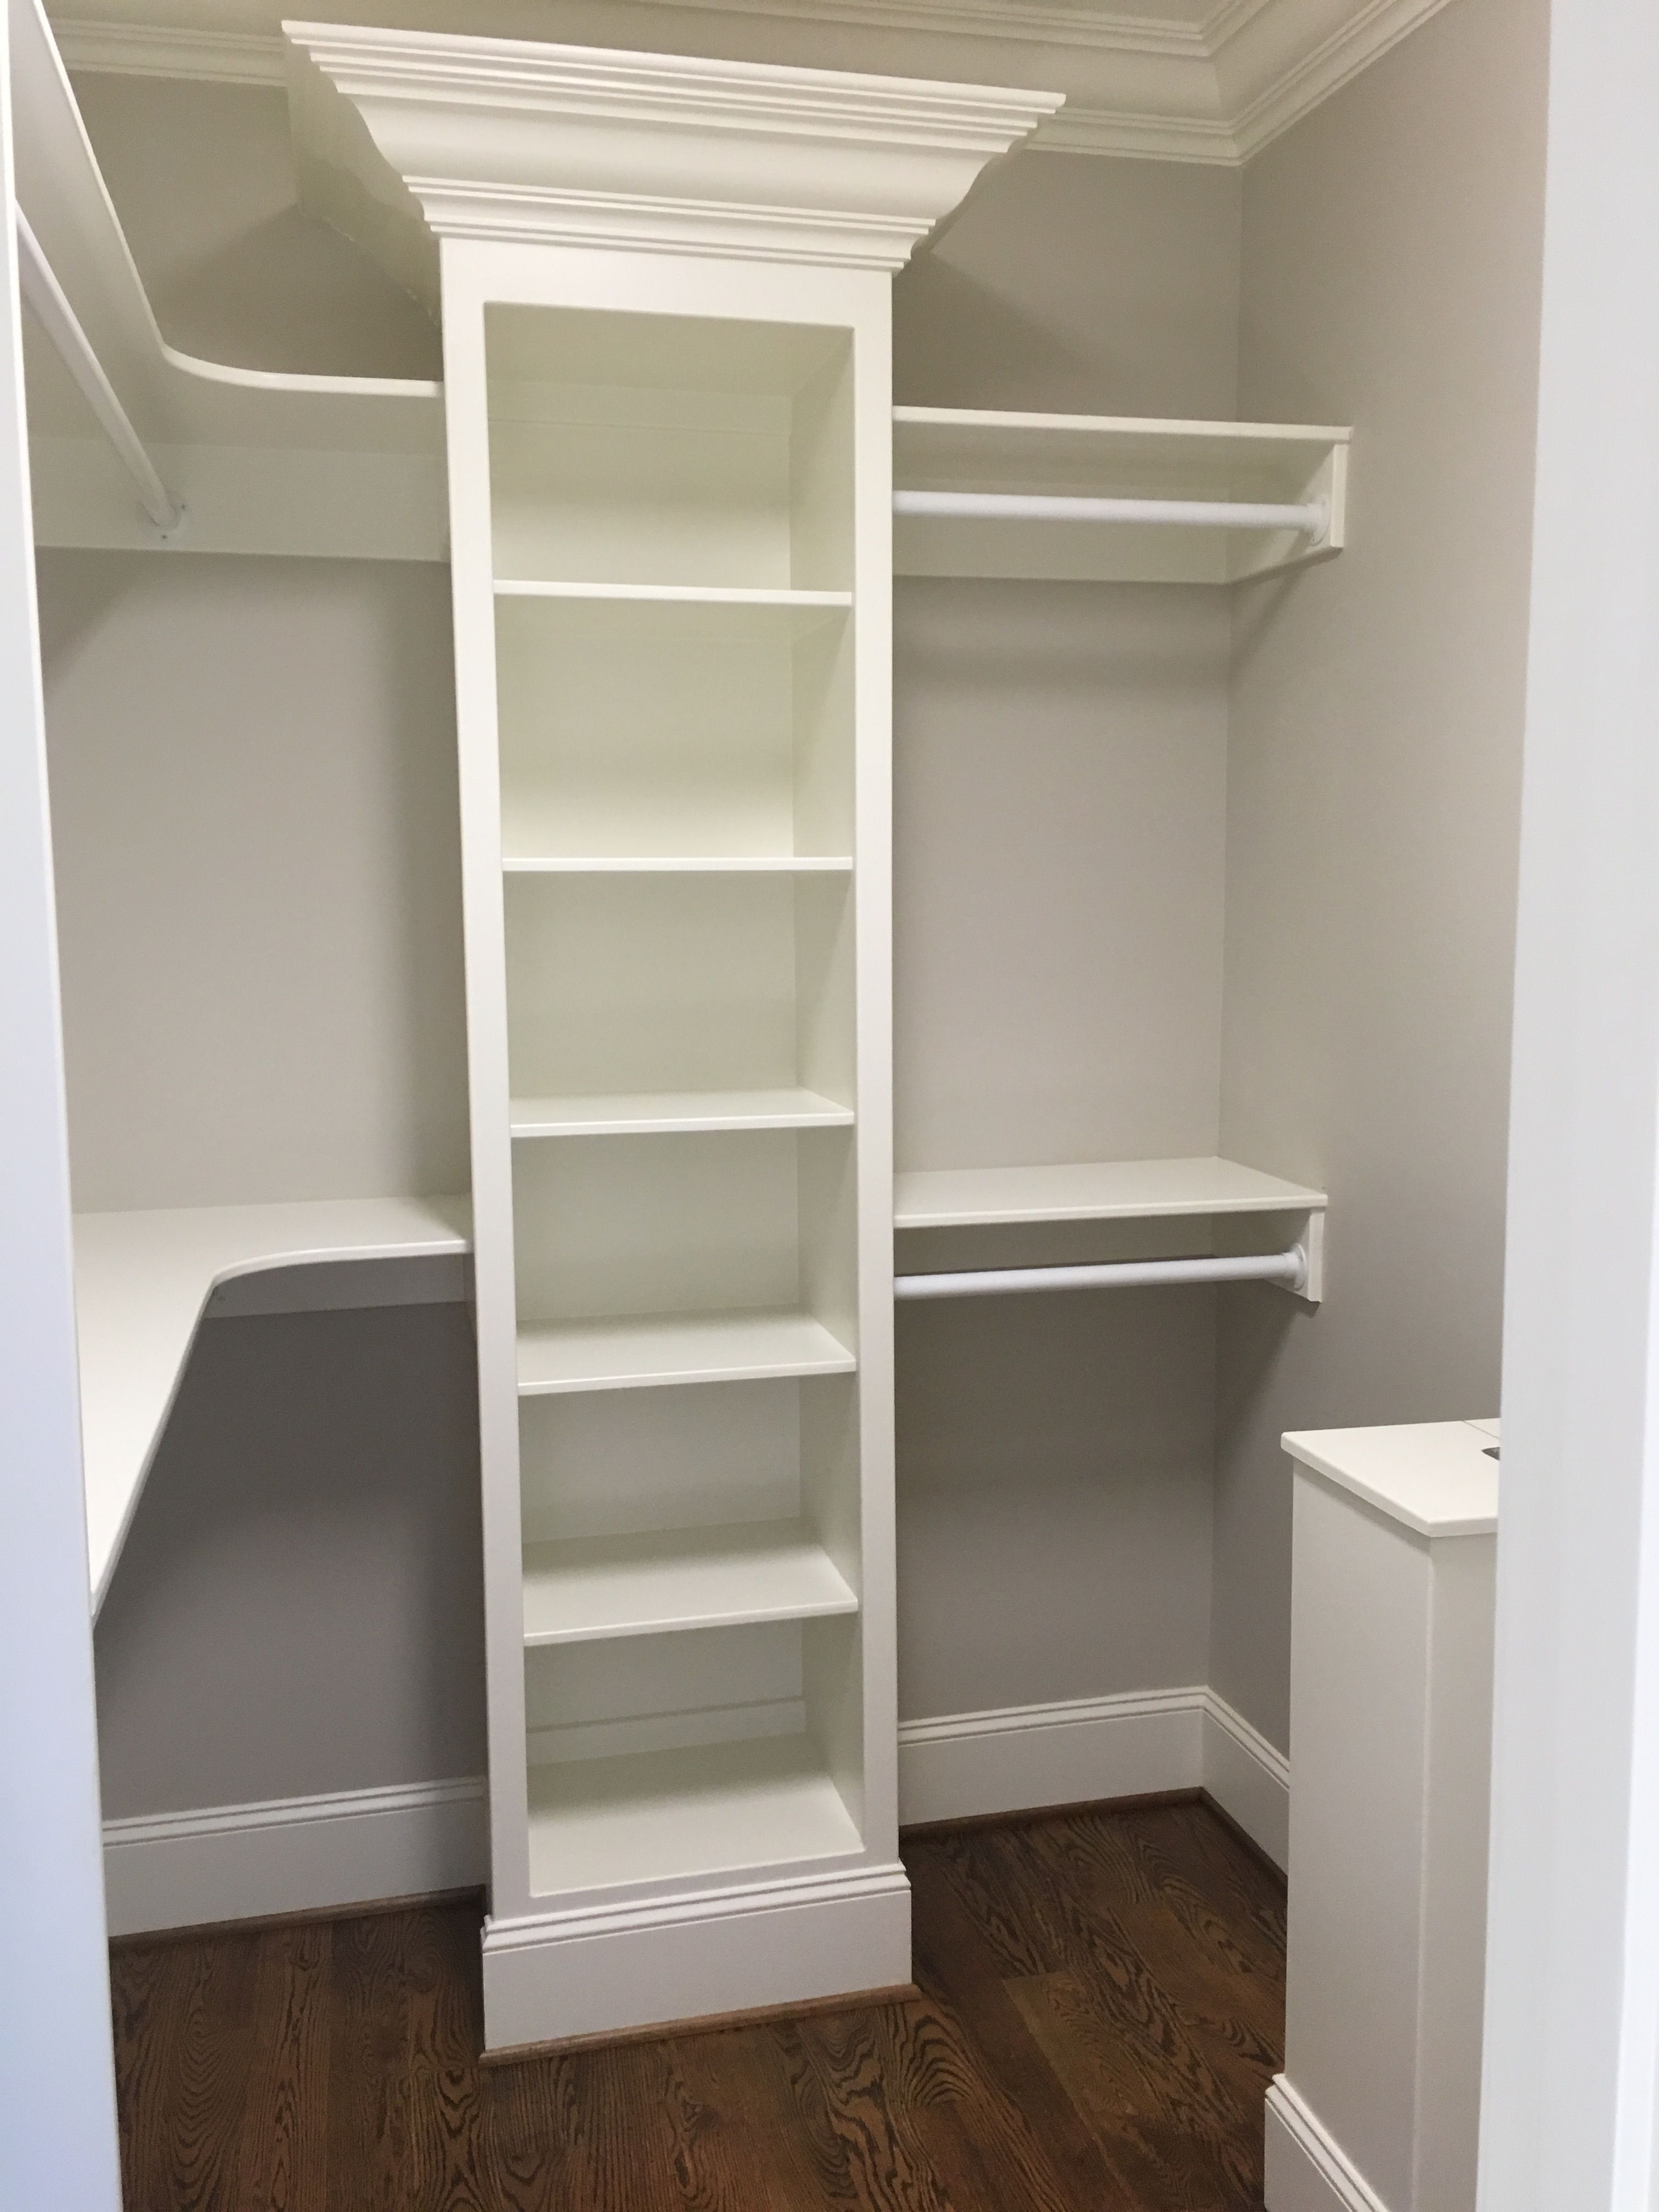 12 small walkin closet ideas and organizer designs with